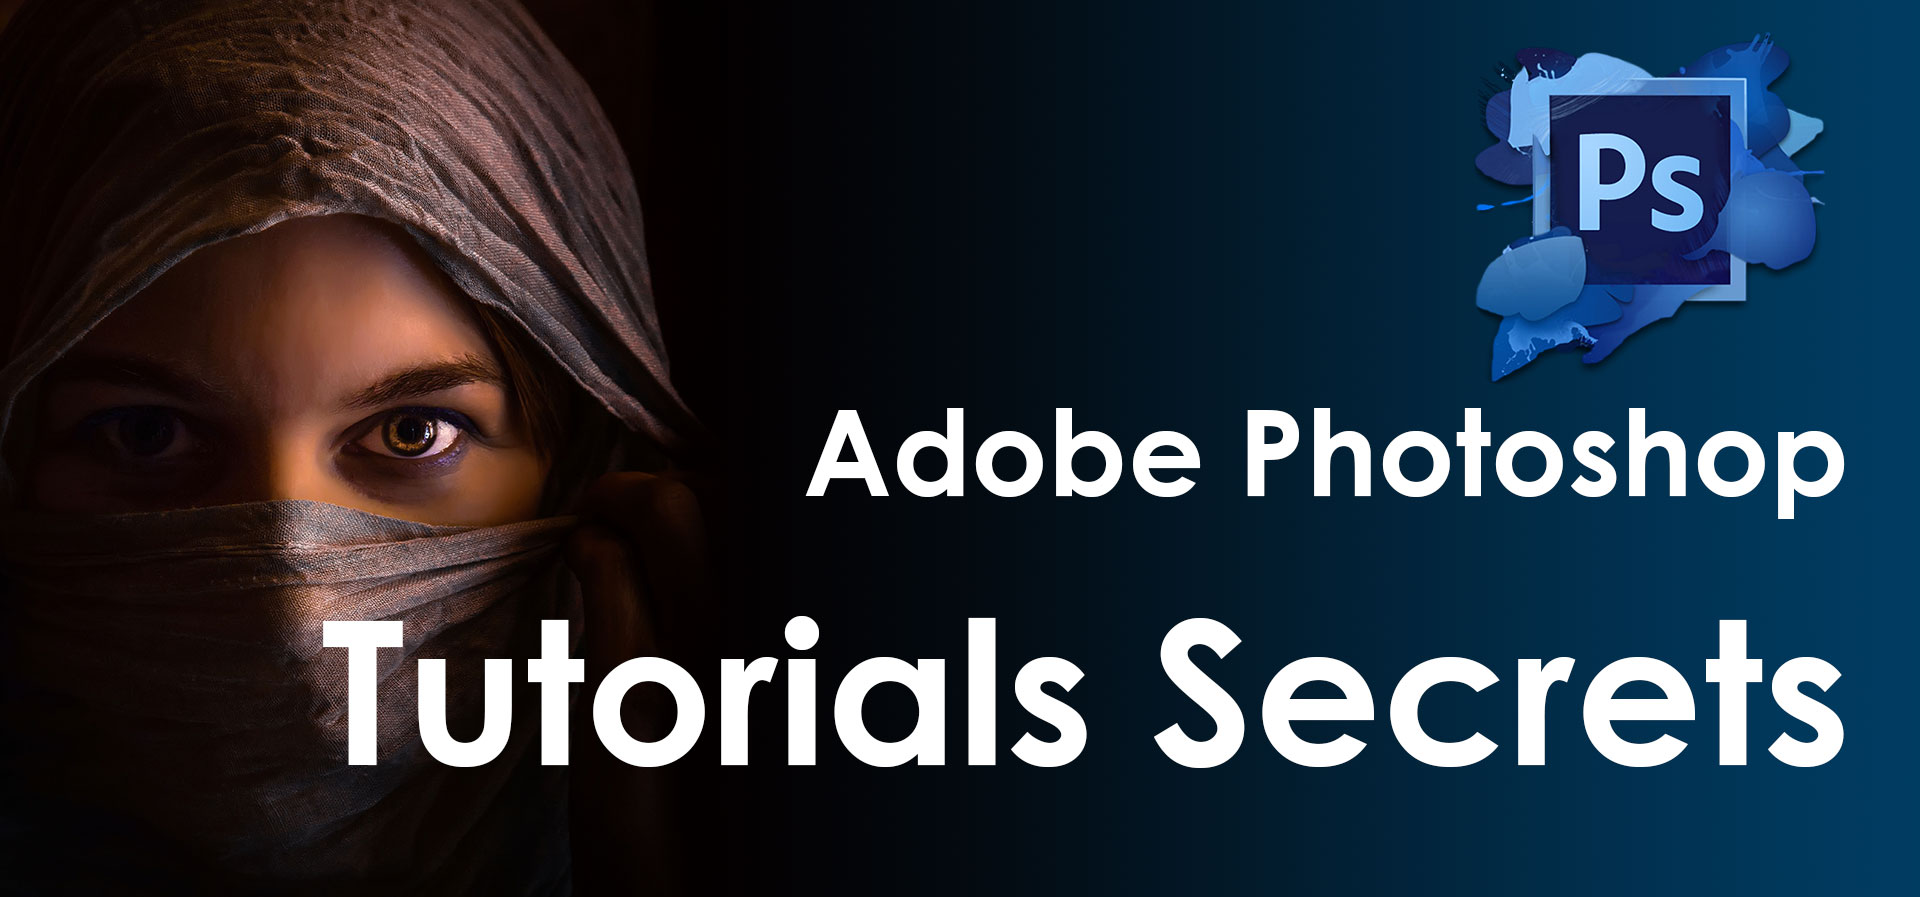 Adobe-Photoshop-Tutorials-Secrets